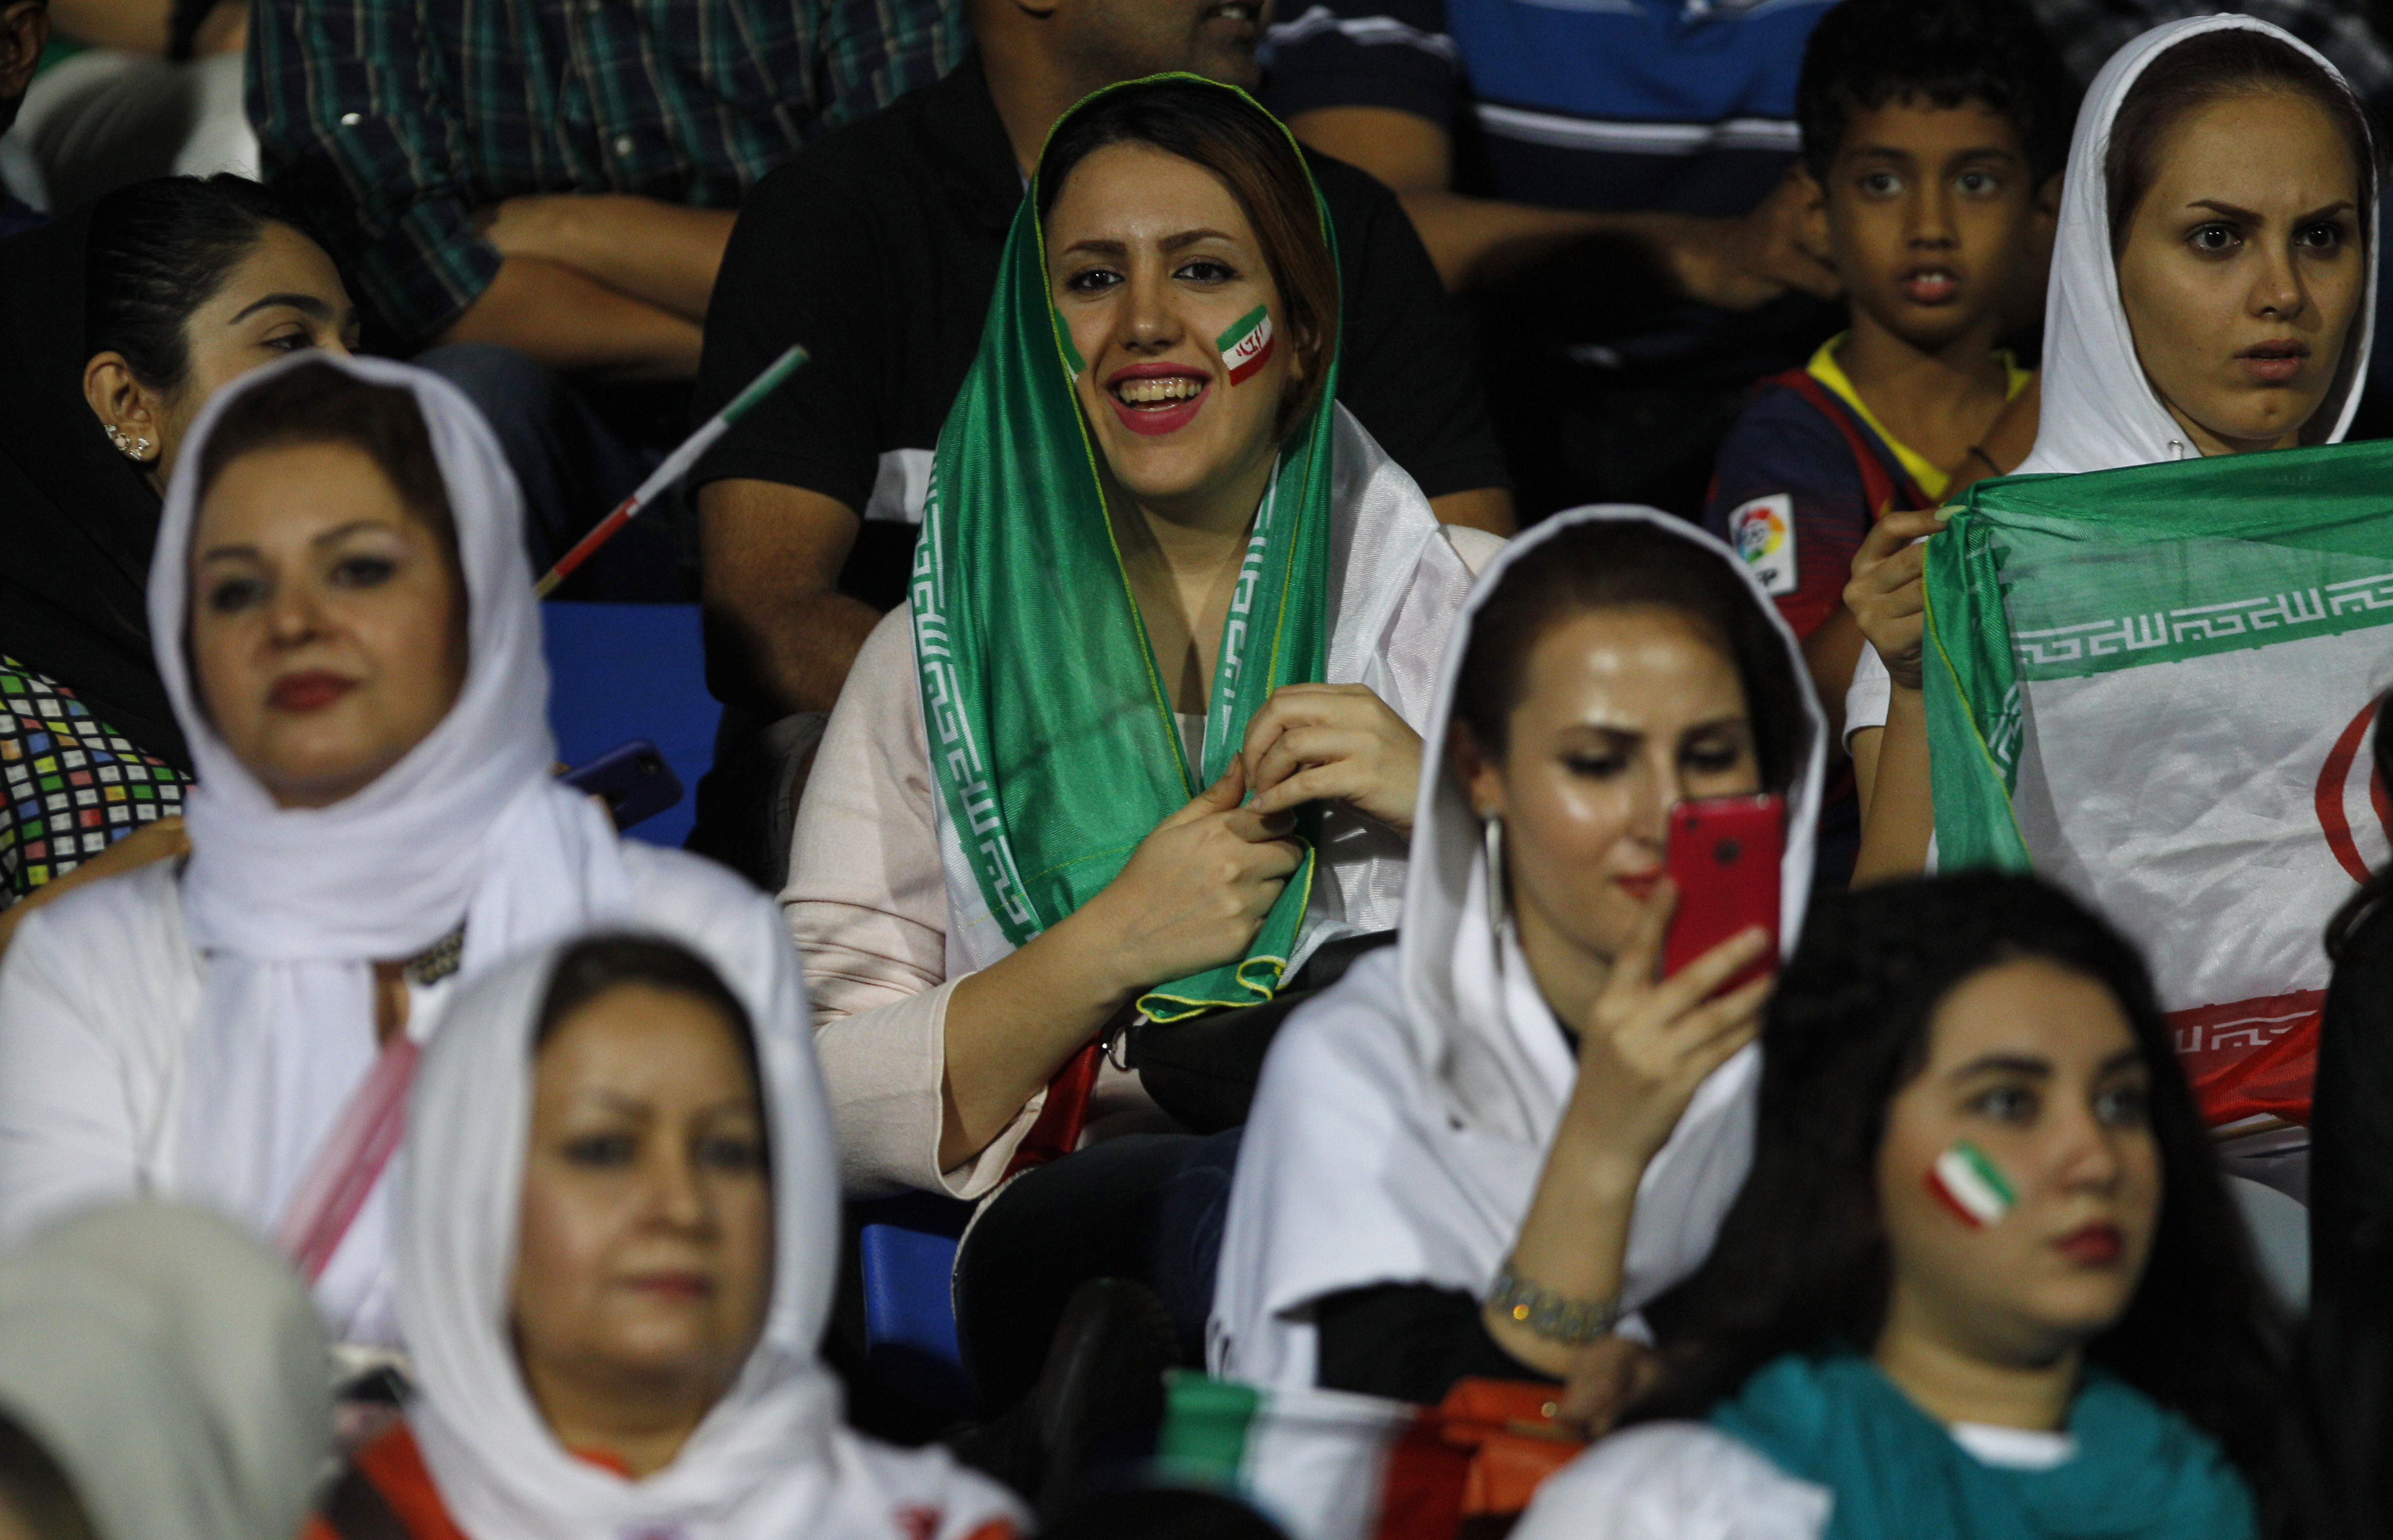 FILE - In this Sept. 8, 2015 file photo, Iranian women watch the 2018 FIFA World Cup qualifying soccer match between Iran and India in Bangalore, India.   Iranian women are being denied their place inside sports venues again, with no way to watch their Ol